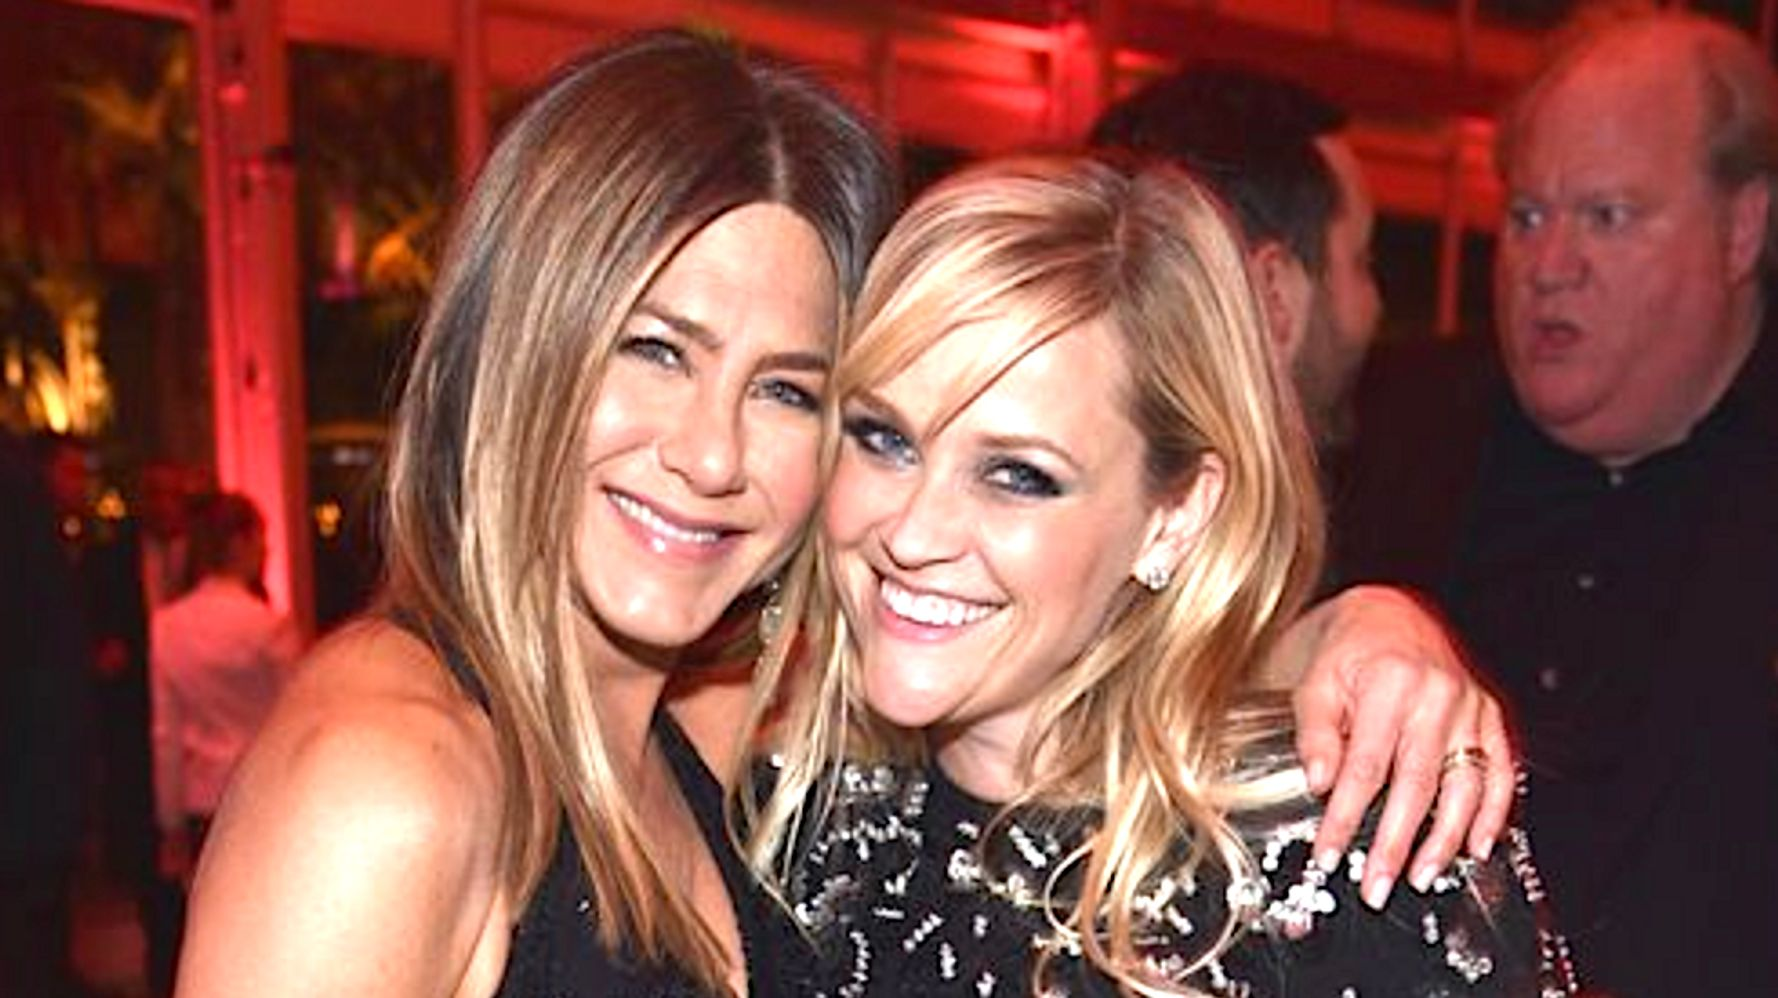 Westlake Legal Group 5da735a2210000090e34a213 Jennifer Aniston, Reese Witherspoon Bank Big Bucks Per 'Morning' Episode